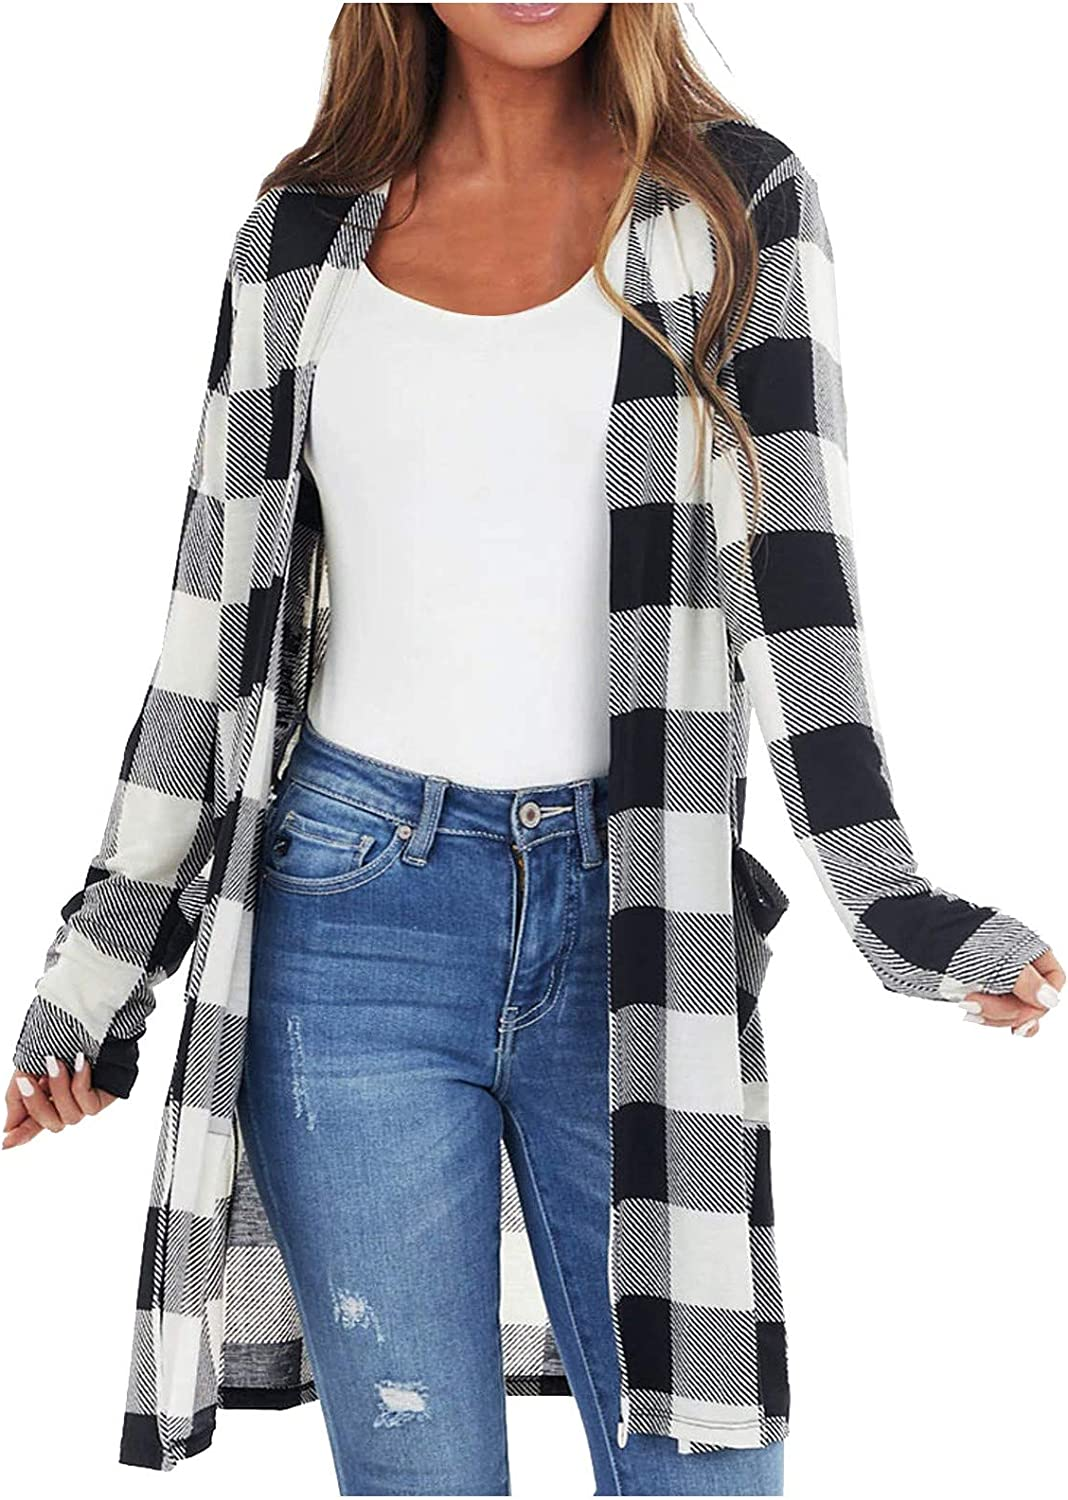 Women's Popular standard New Shipping Free Cardigans Coats Casual Plaid Front Sleev Print Open Long